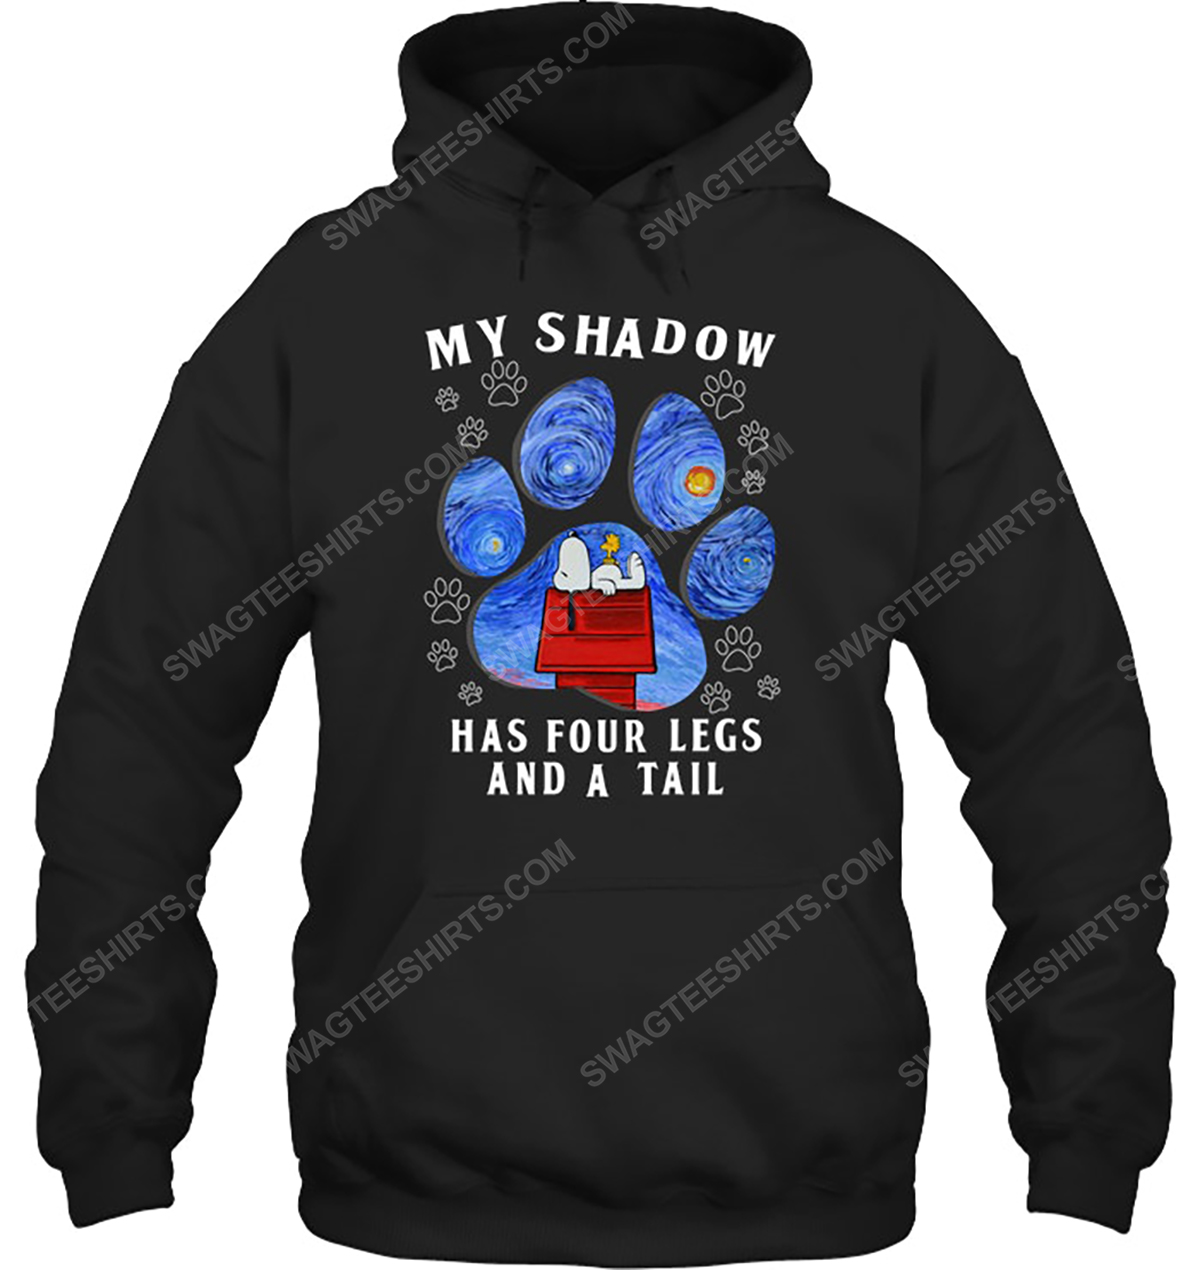 The starry night snoopy my shadow has 4 legs and a tail hoodie 1